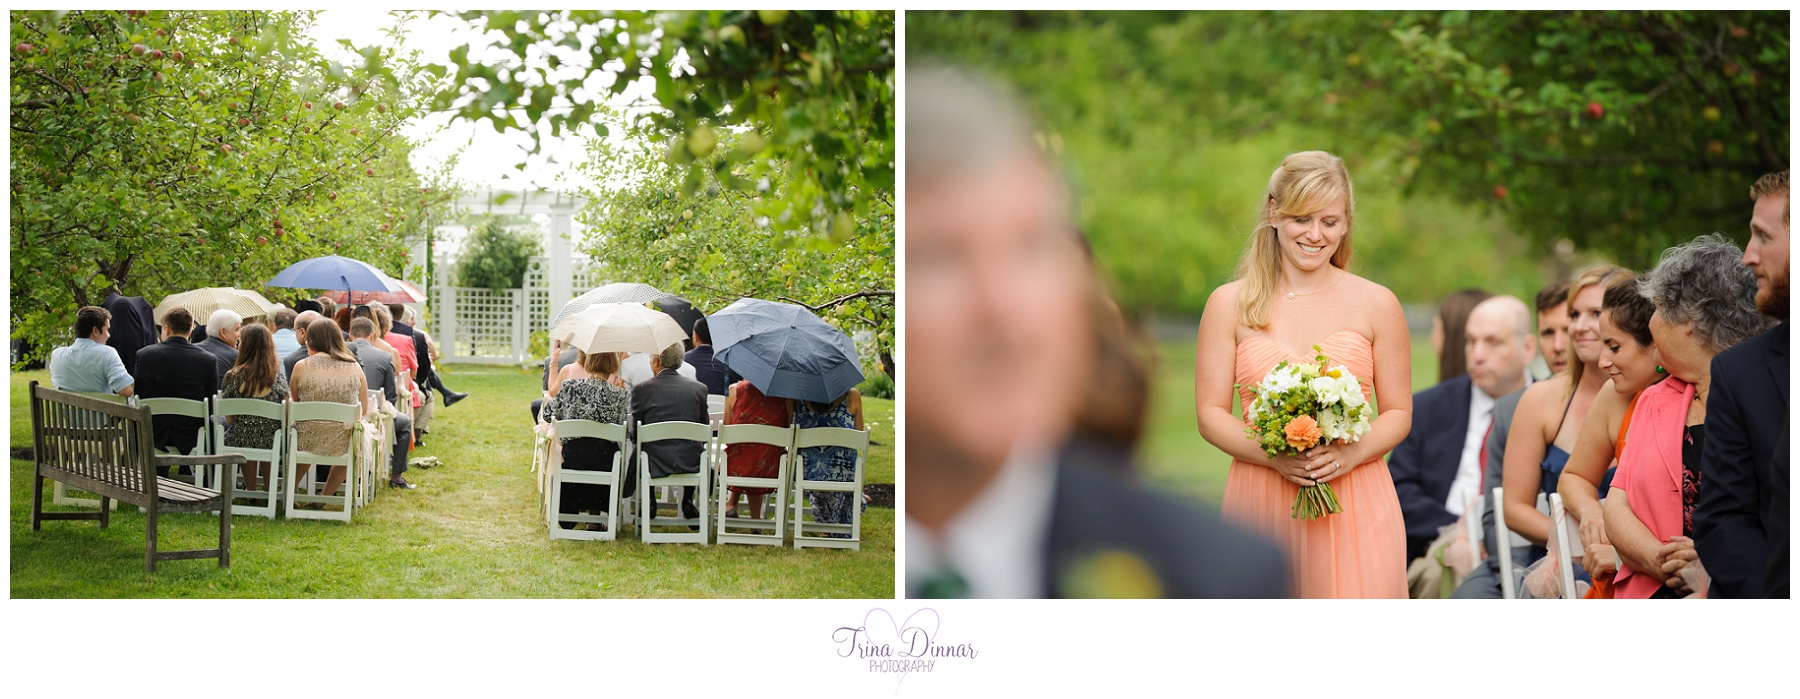 Wedding Photography at Pineland Farms in New Gloucester, Maine